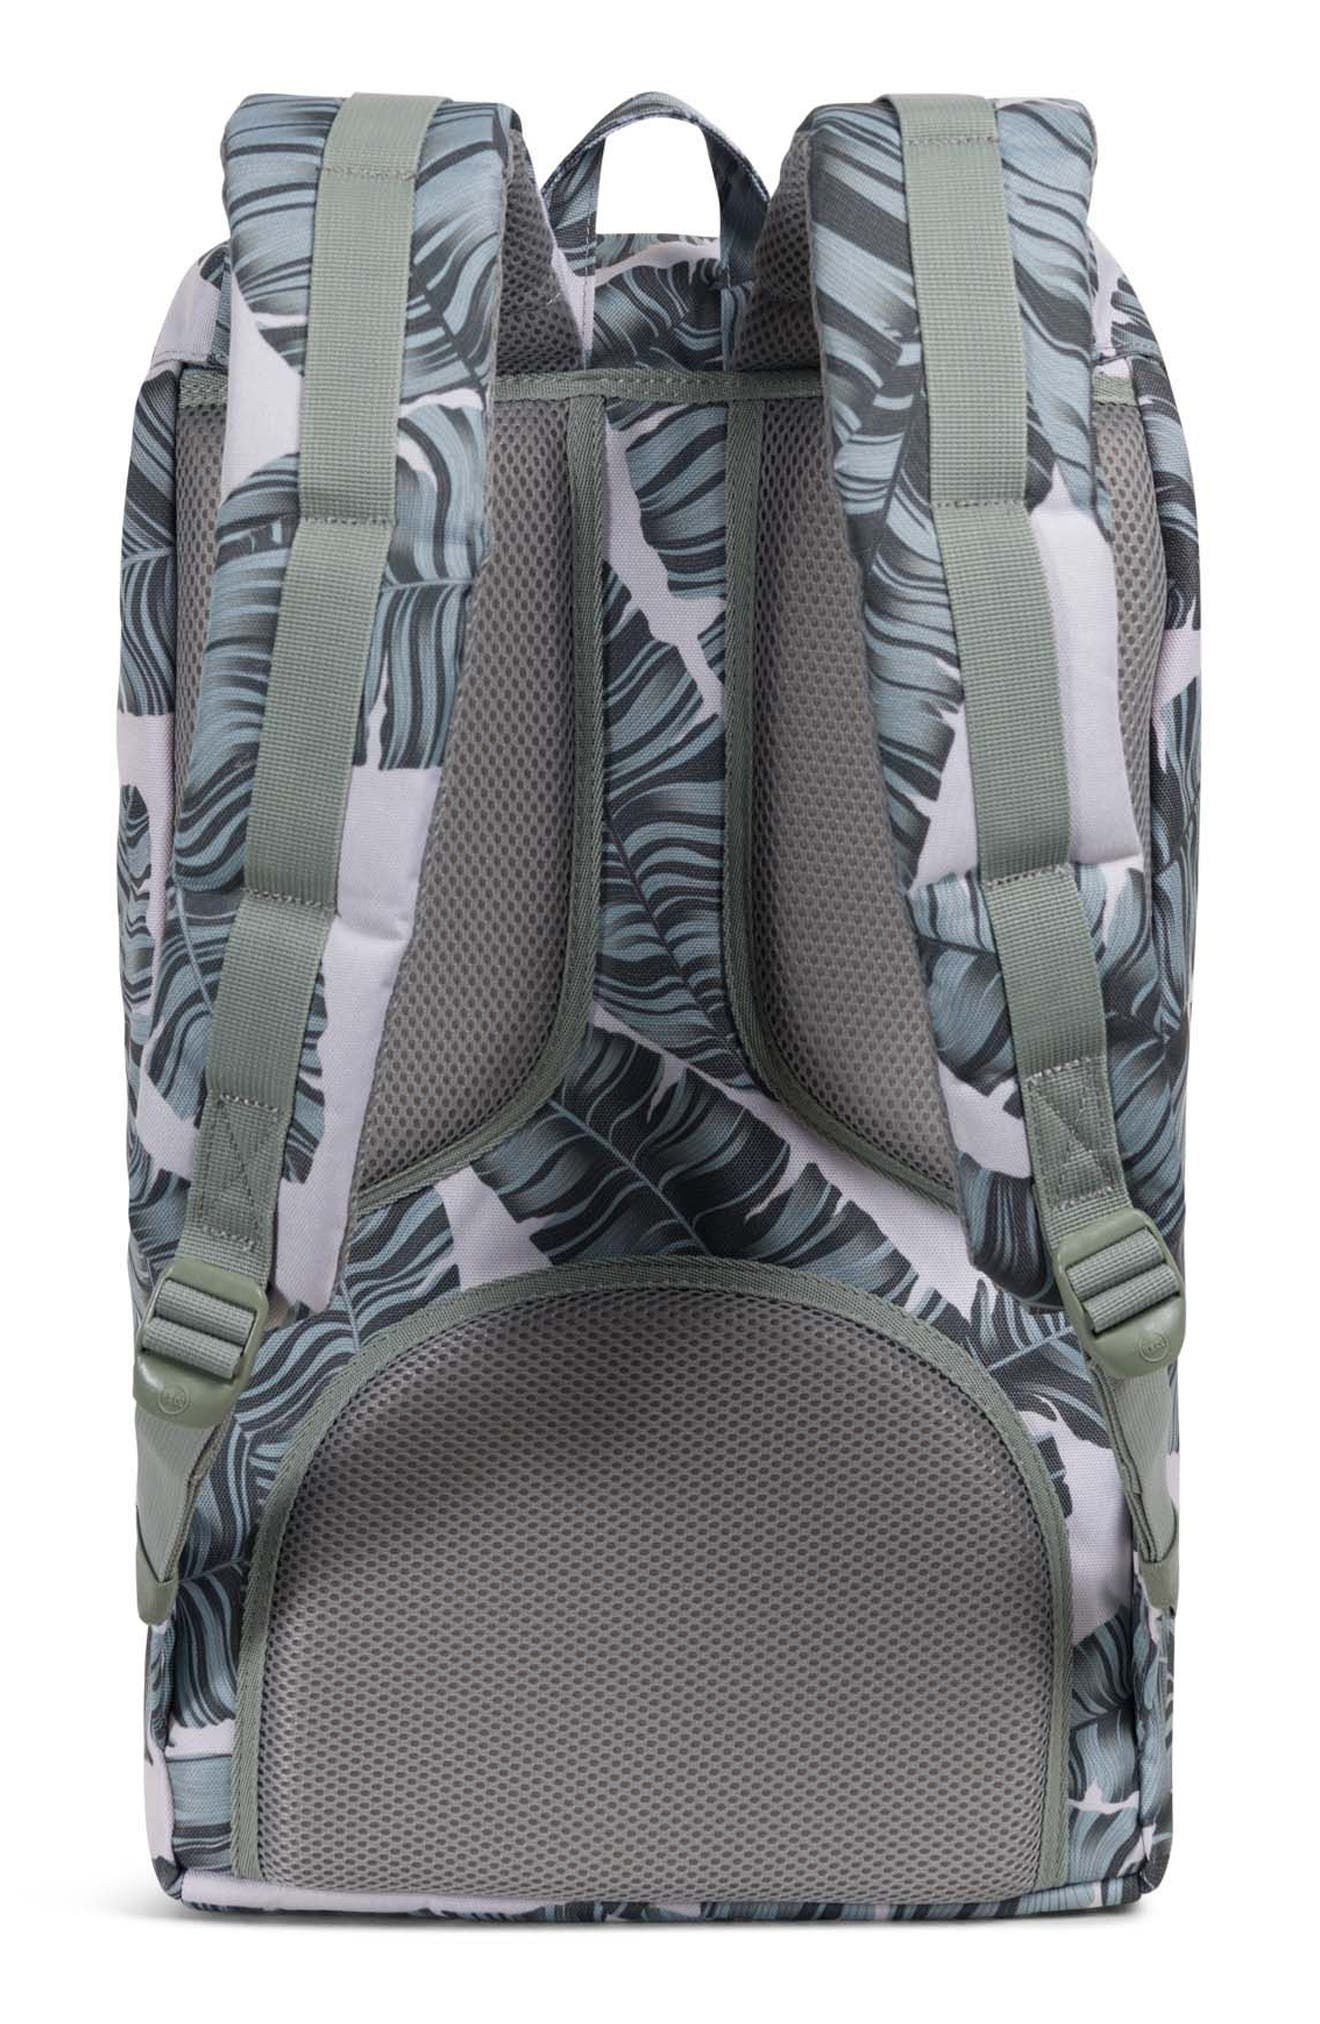 'Little America' Backpack,                             Alternate thumbnail 2, color,                             Silver Birch Palm/ Tan